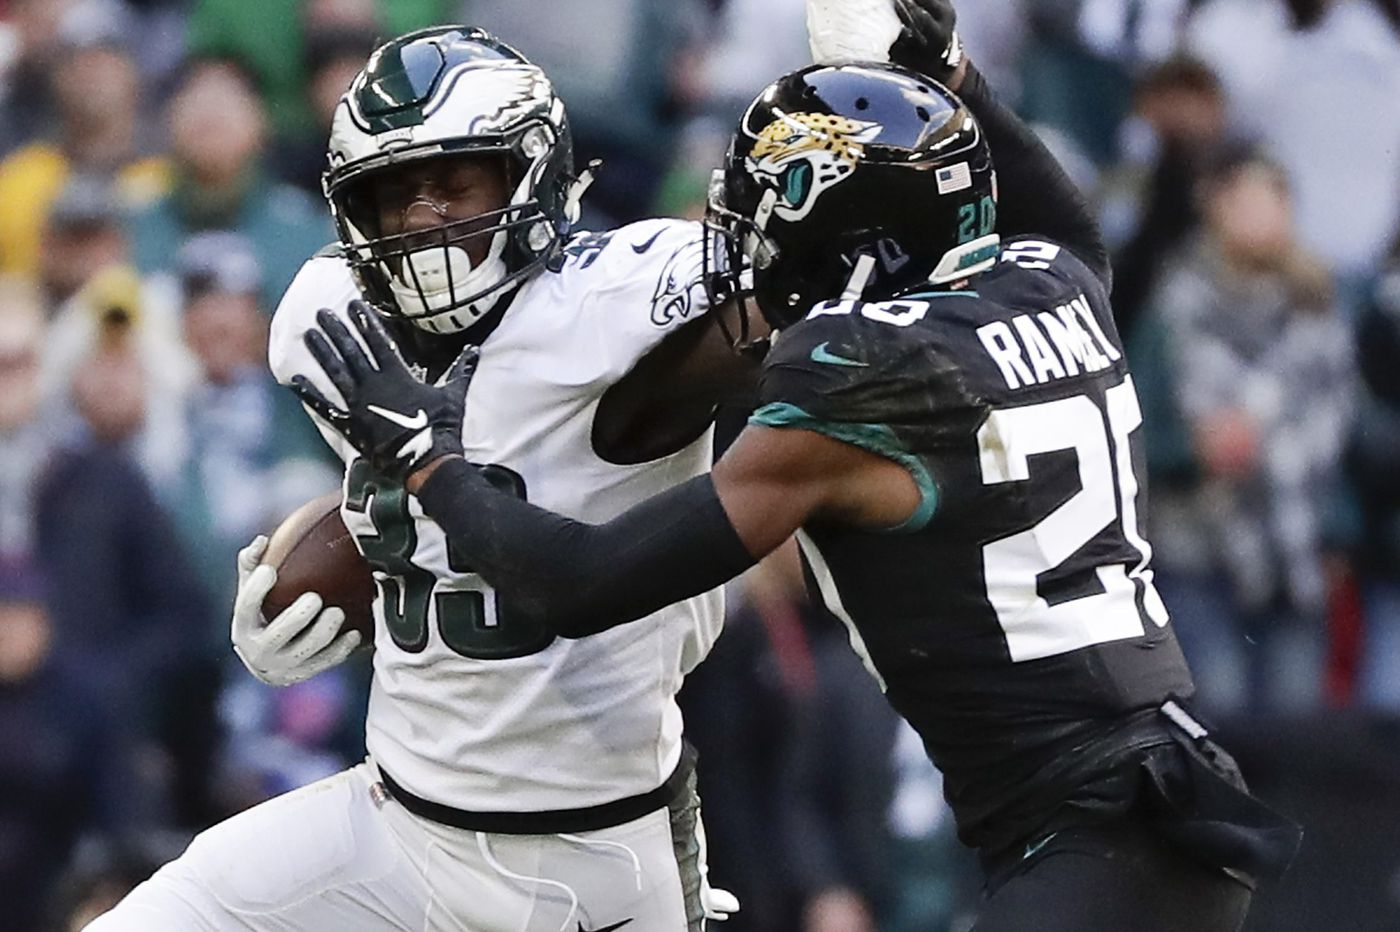 Grading the Eagles: Running backs get an A- in win over Jaguars | Paul Domowitch